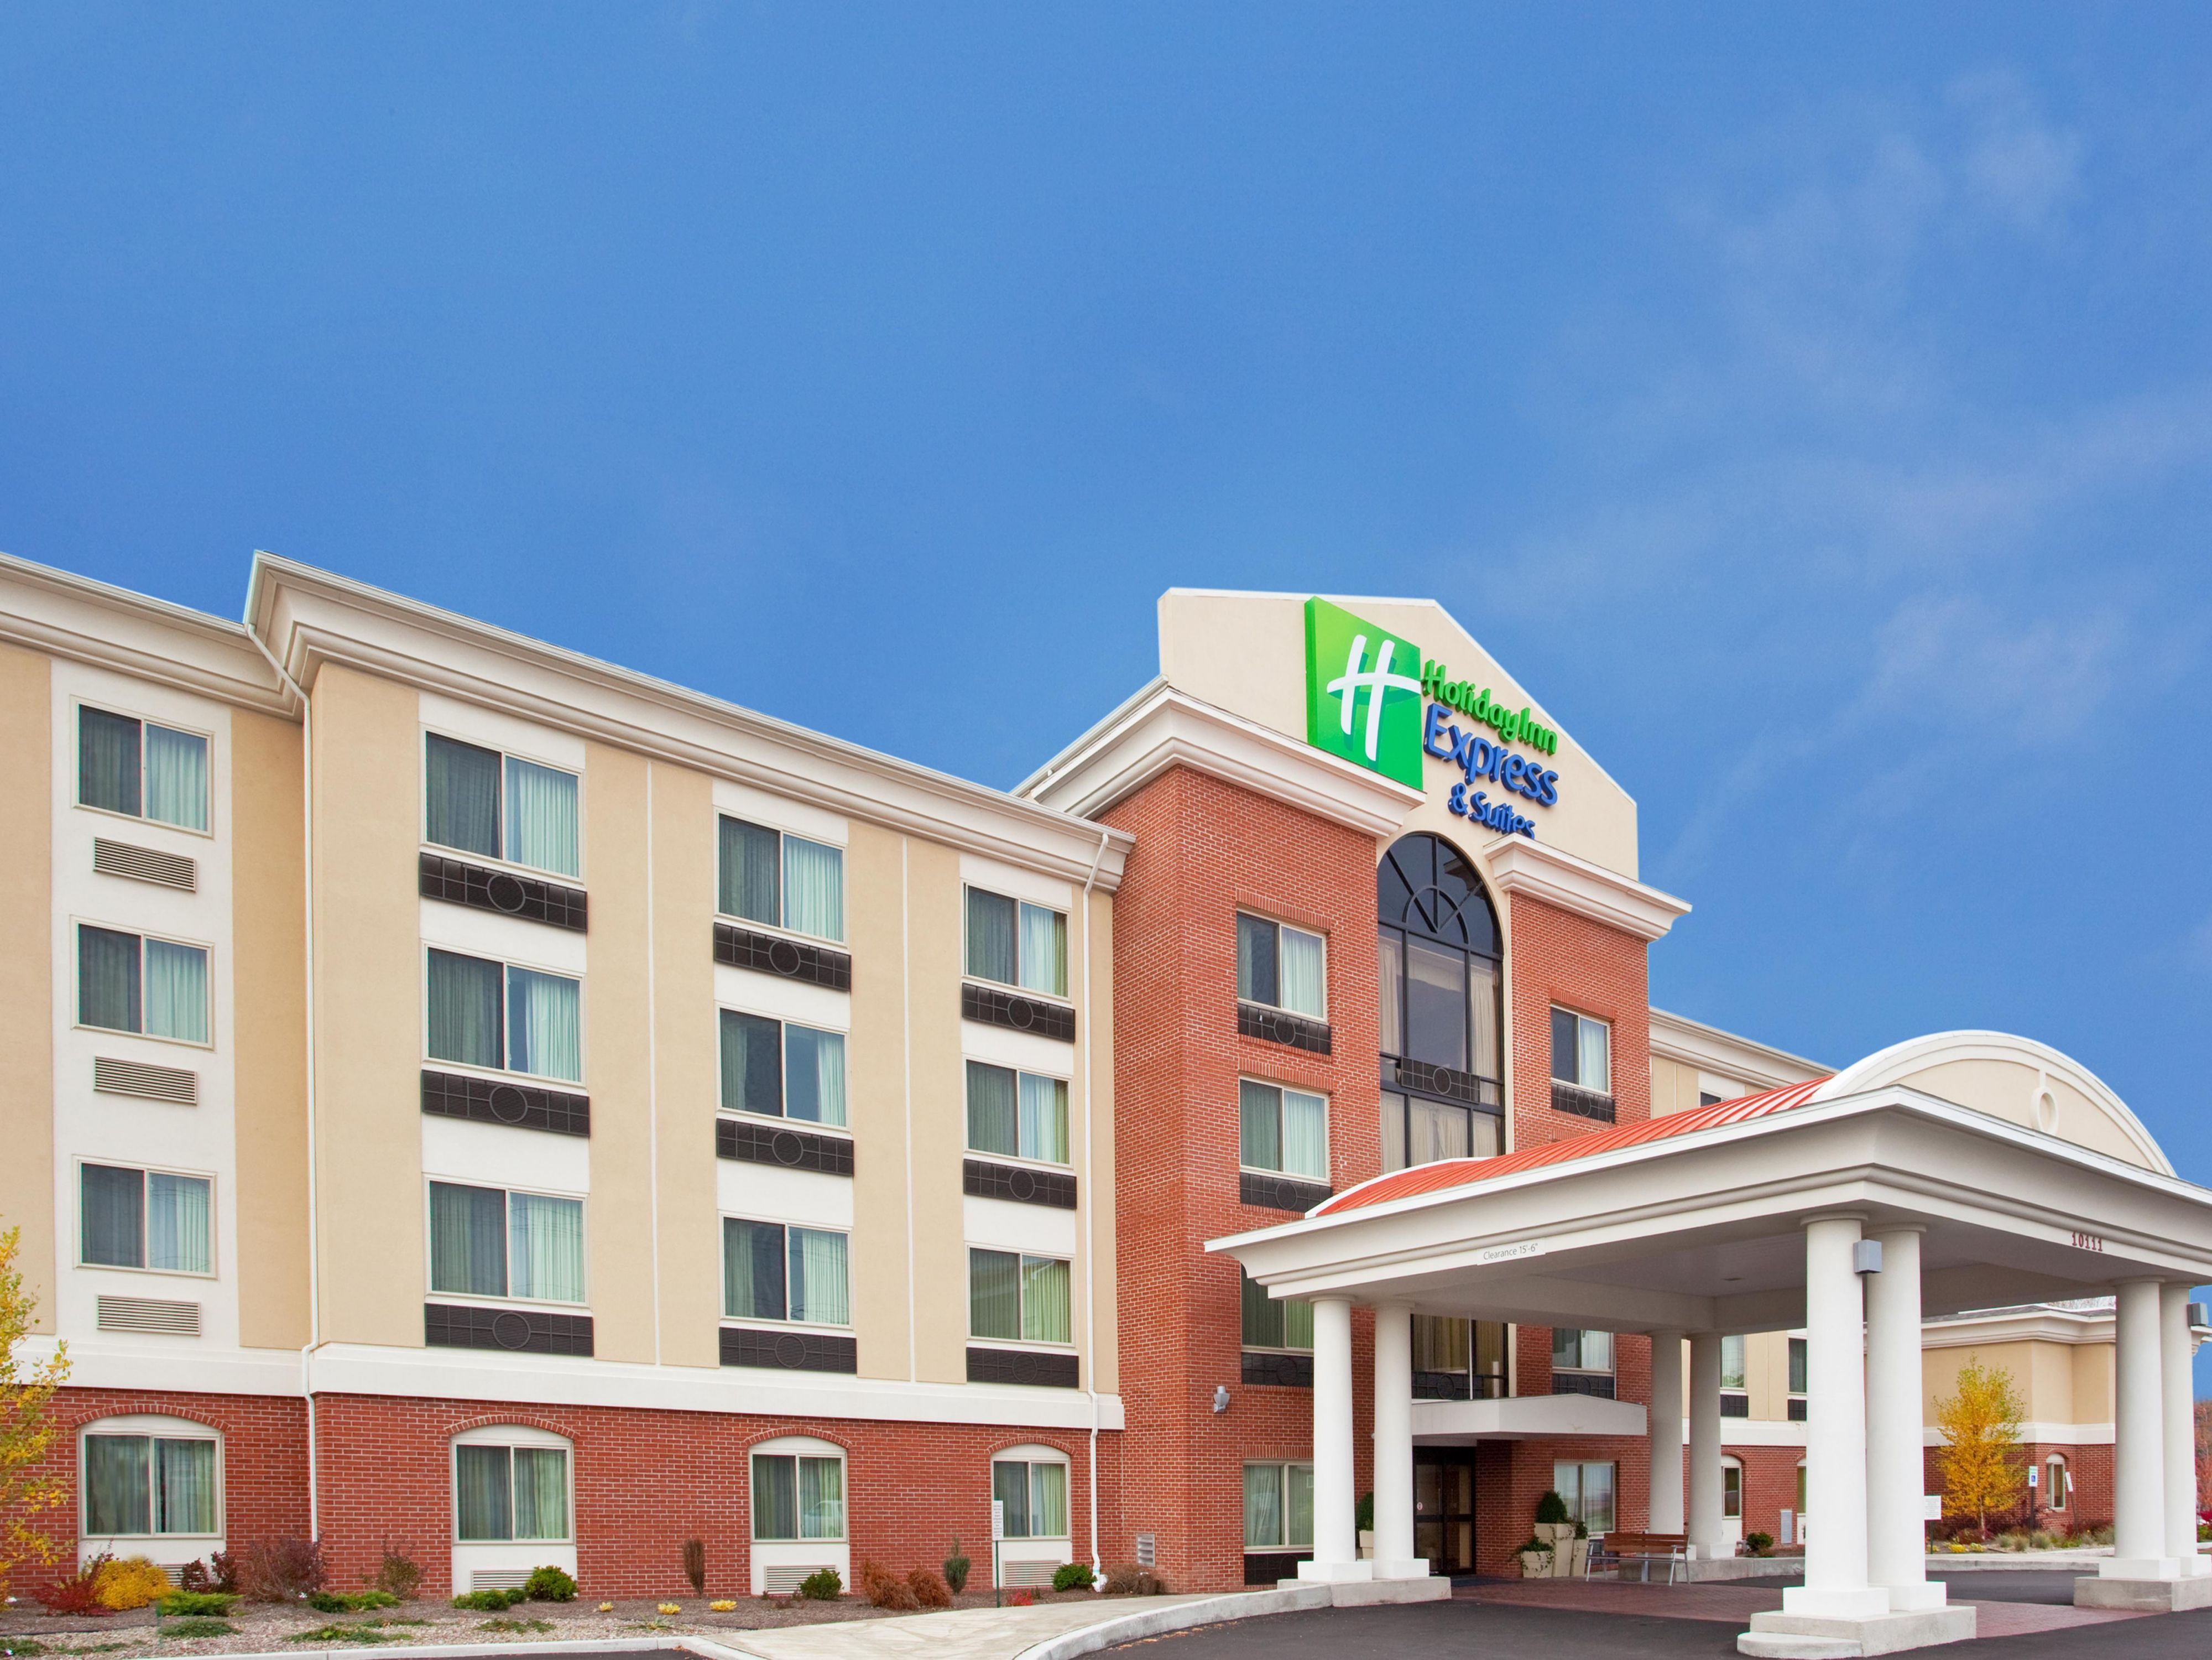 Holiday Inn Express we are 5 min away from Fashion Outlets!